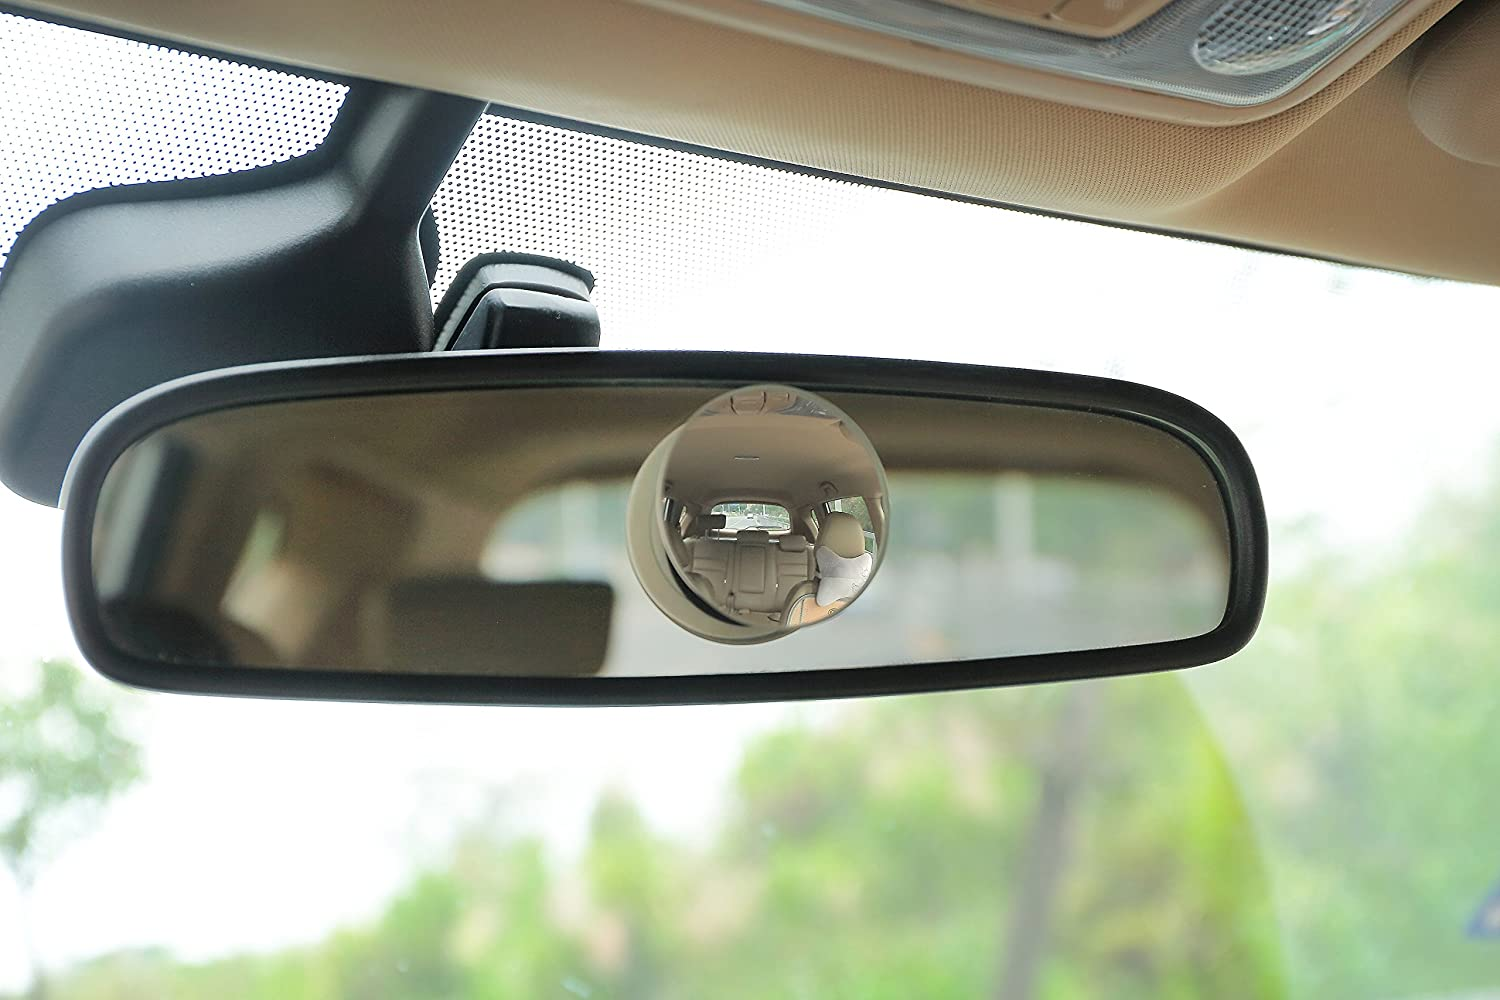 Pack of 2 Fixed and 360/° Adjustable Angle Use - Rear View Two-Way Design Round 2 Convex Glass Mirror Dependable Direct HD Frameless Blind Spot Mirror